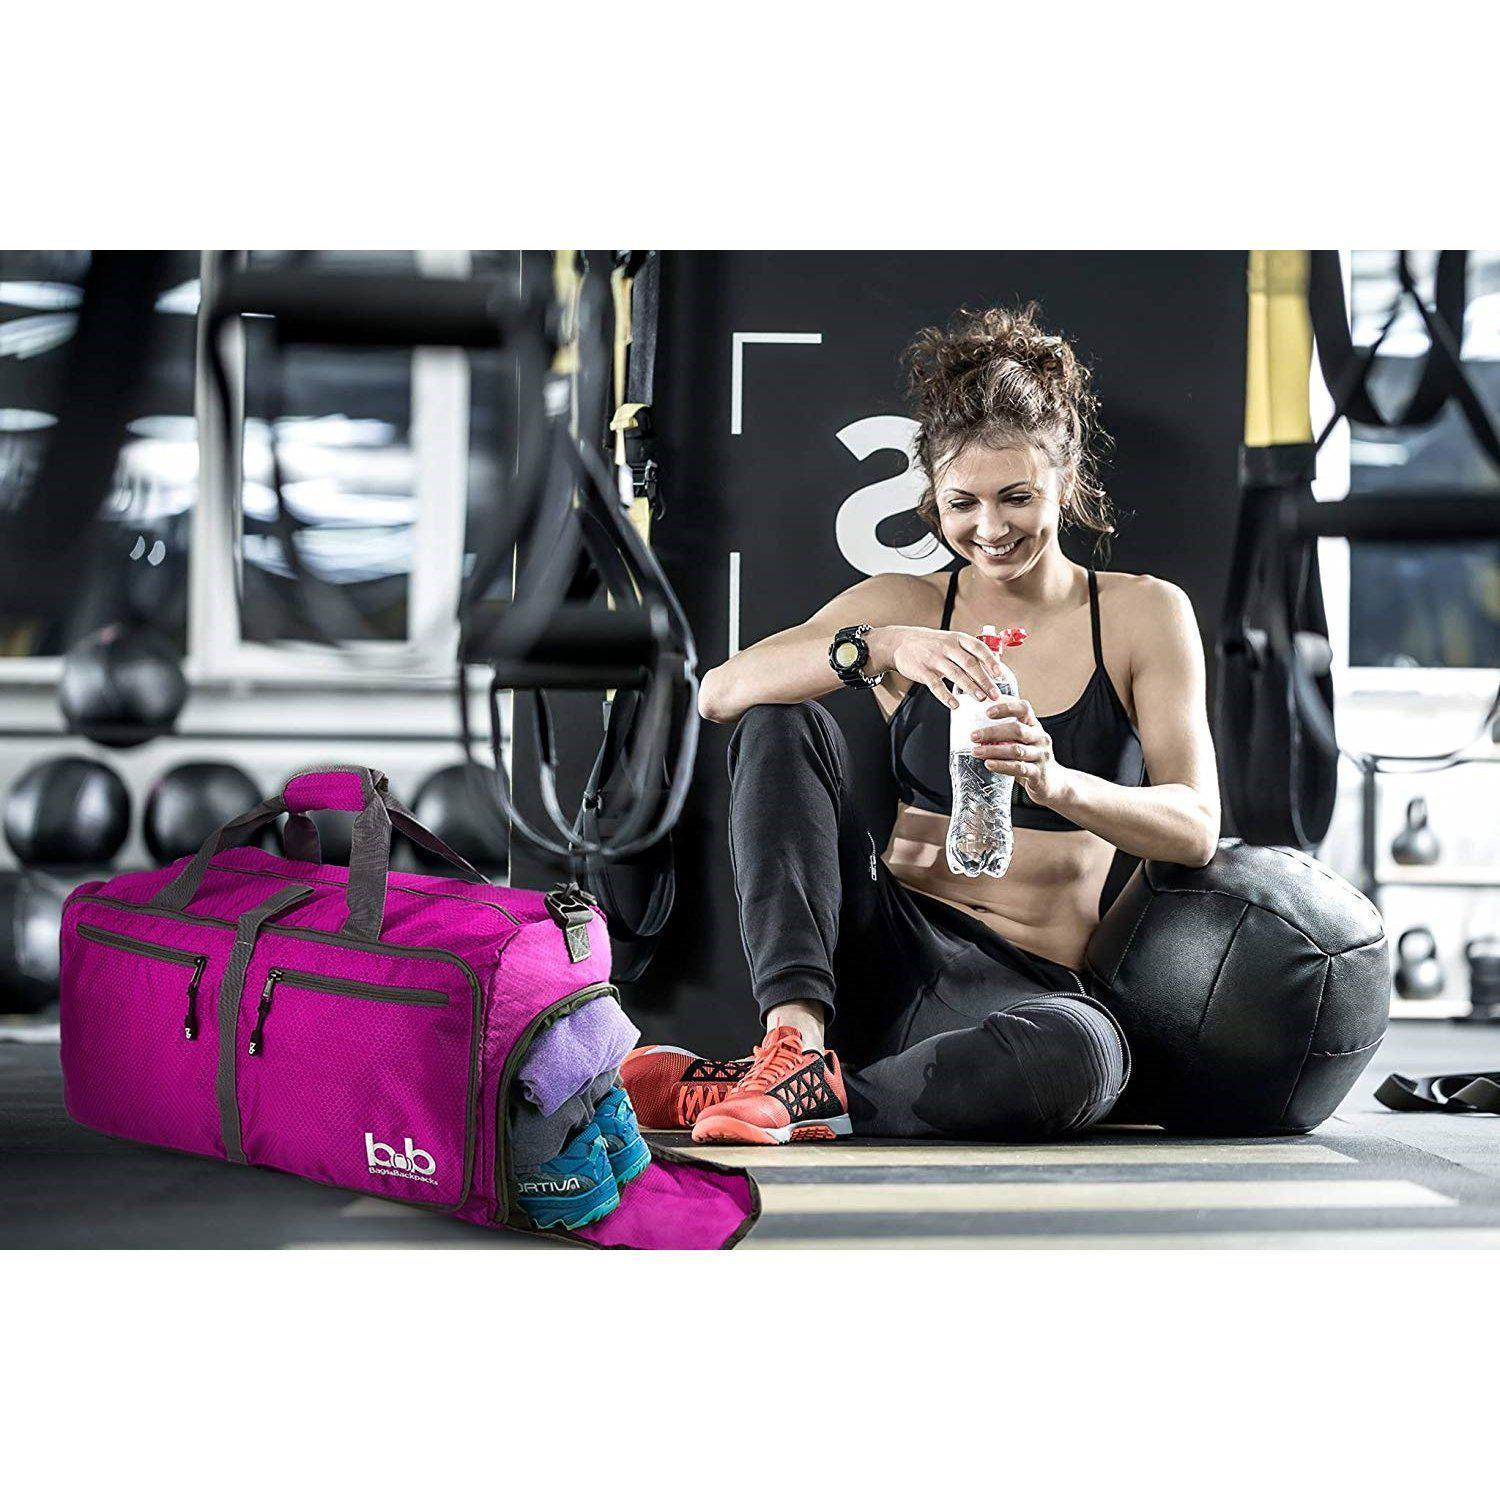 B&B 60L Medium Gym Duffle Bag With Pockets - Foldable Lightweight Travel Bag